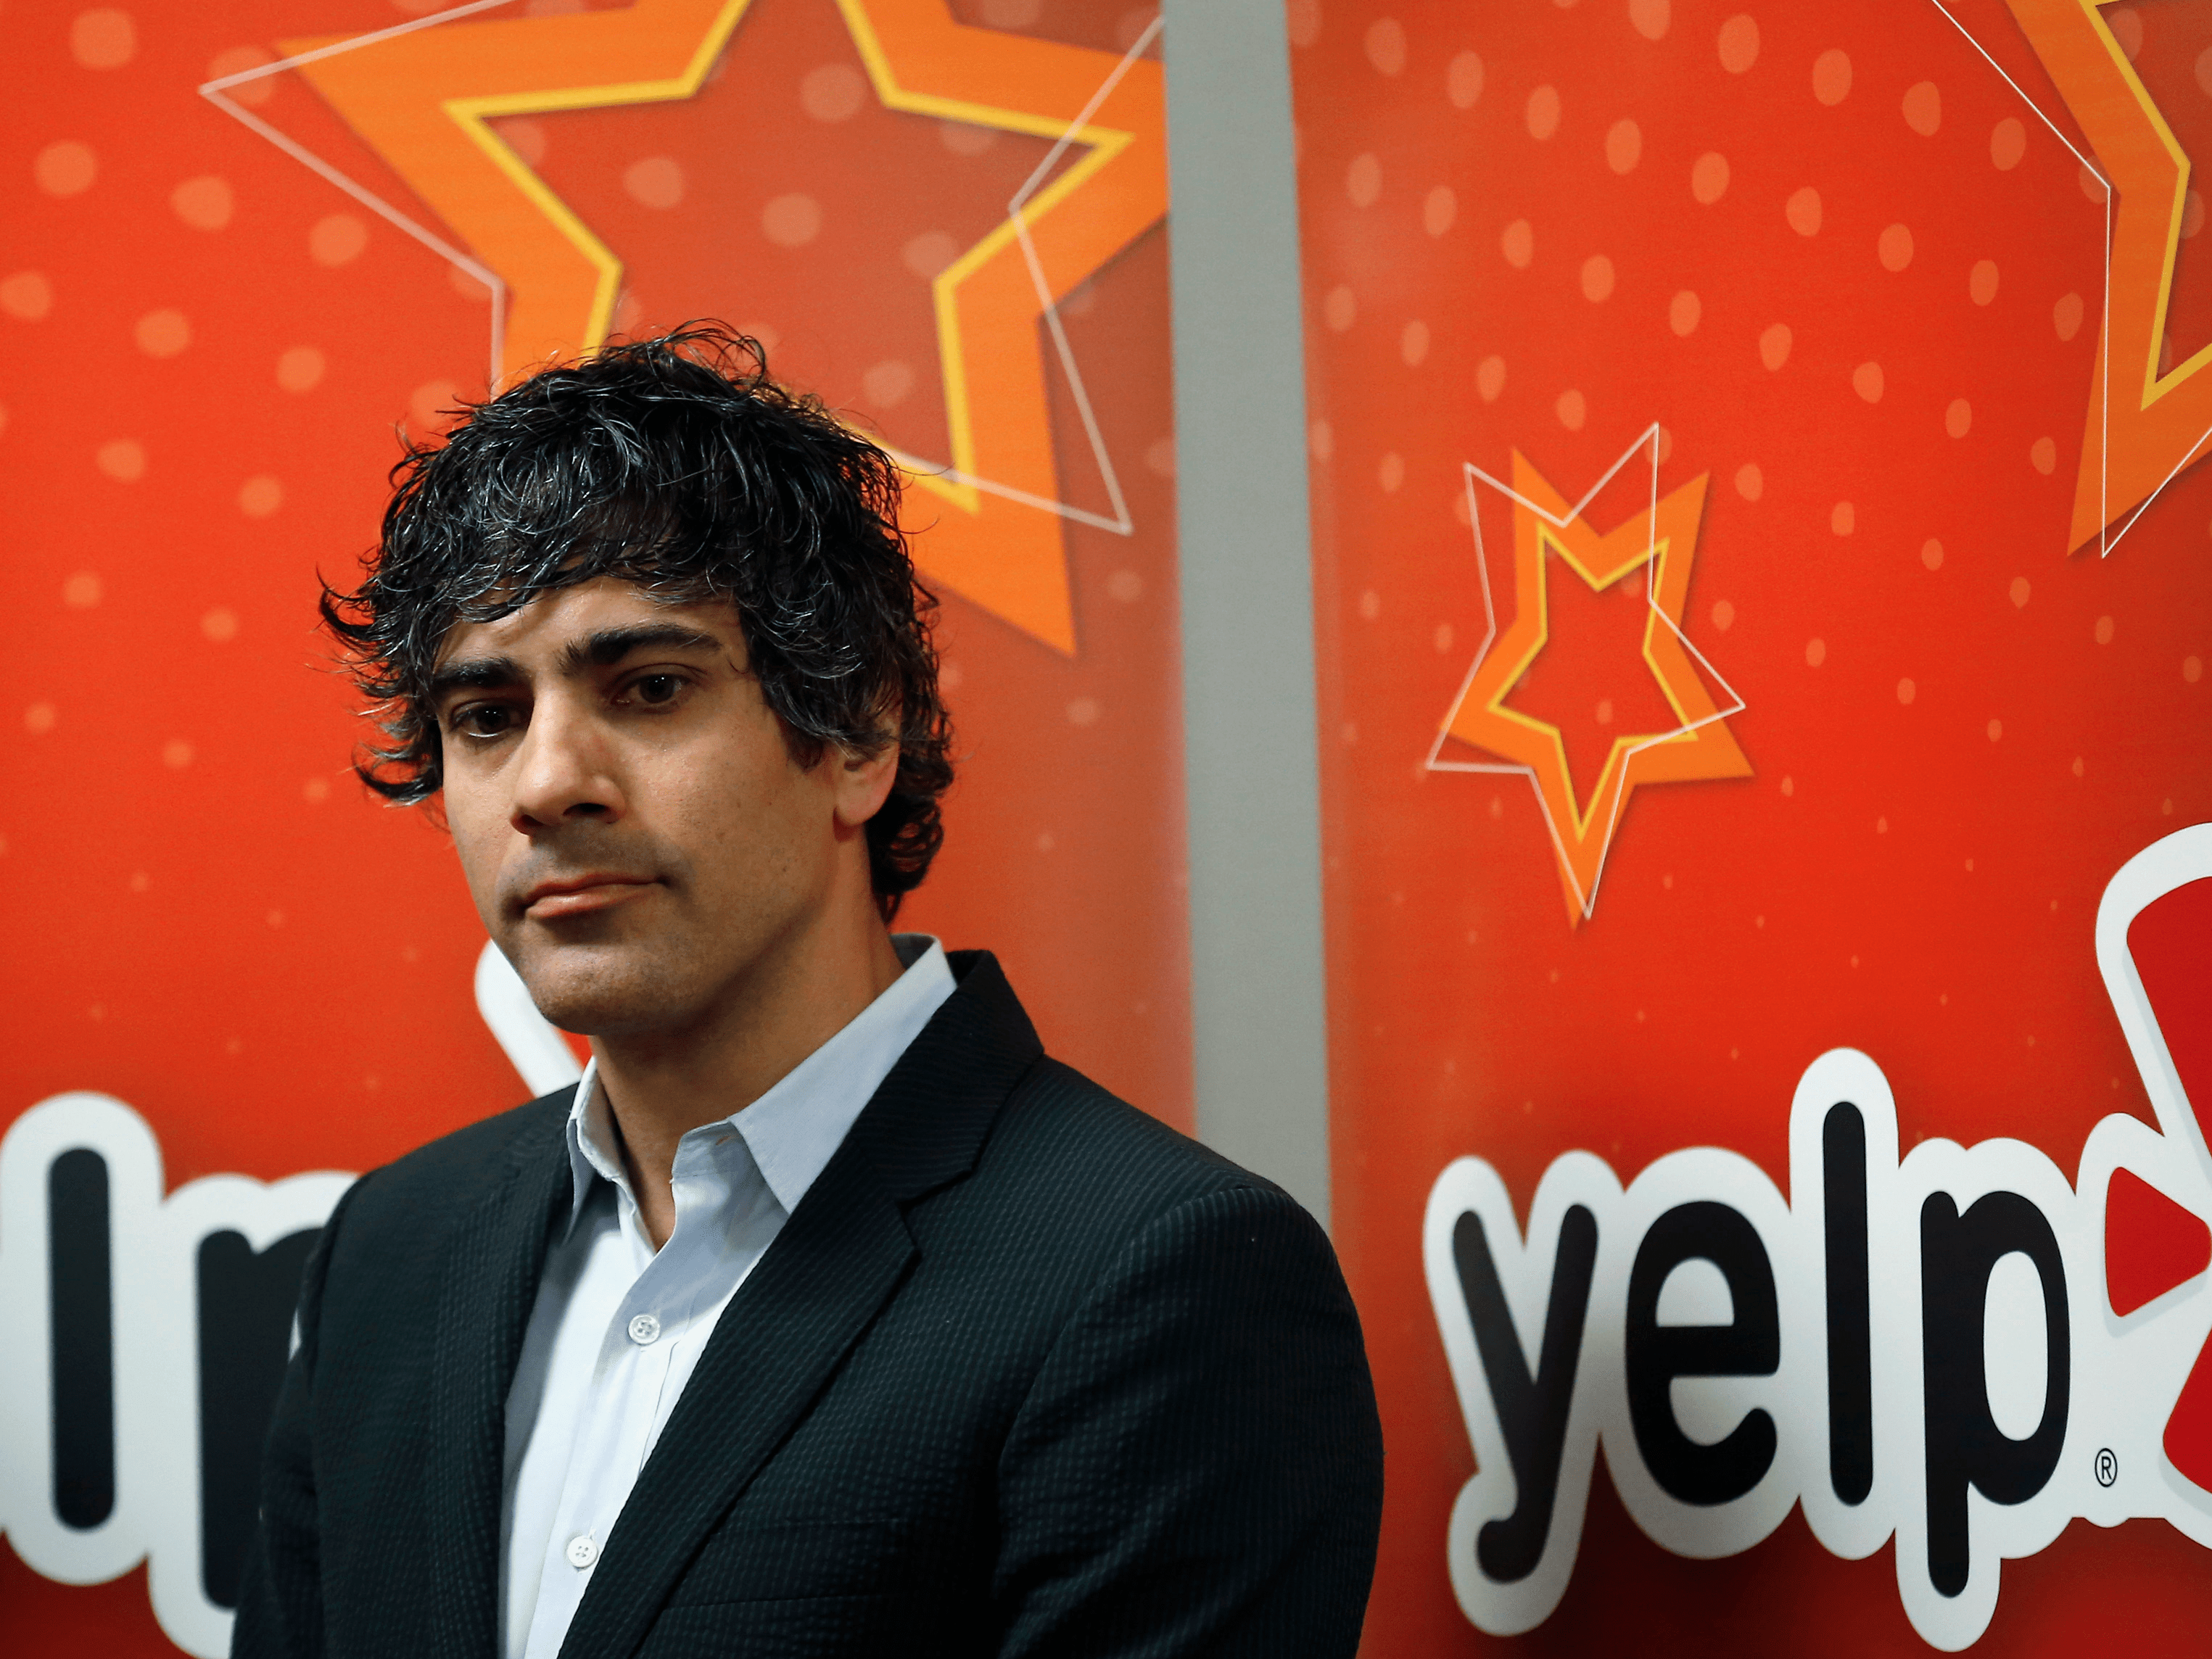 February: A Yelp employee is fired after publicly complaining that the company didn't pay her enough to make ends meet.